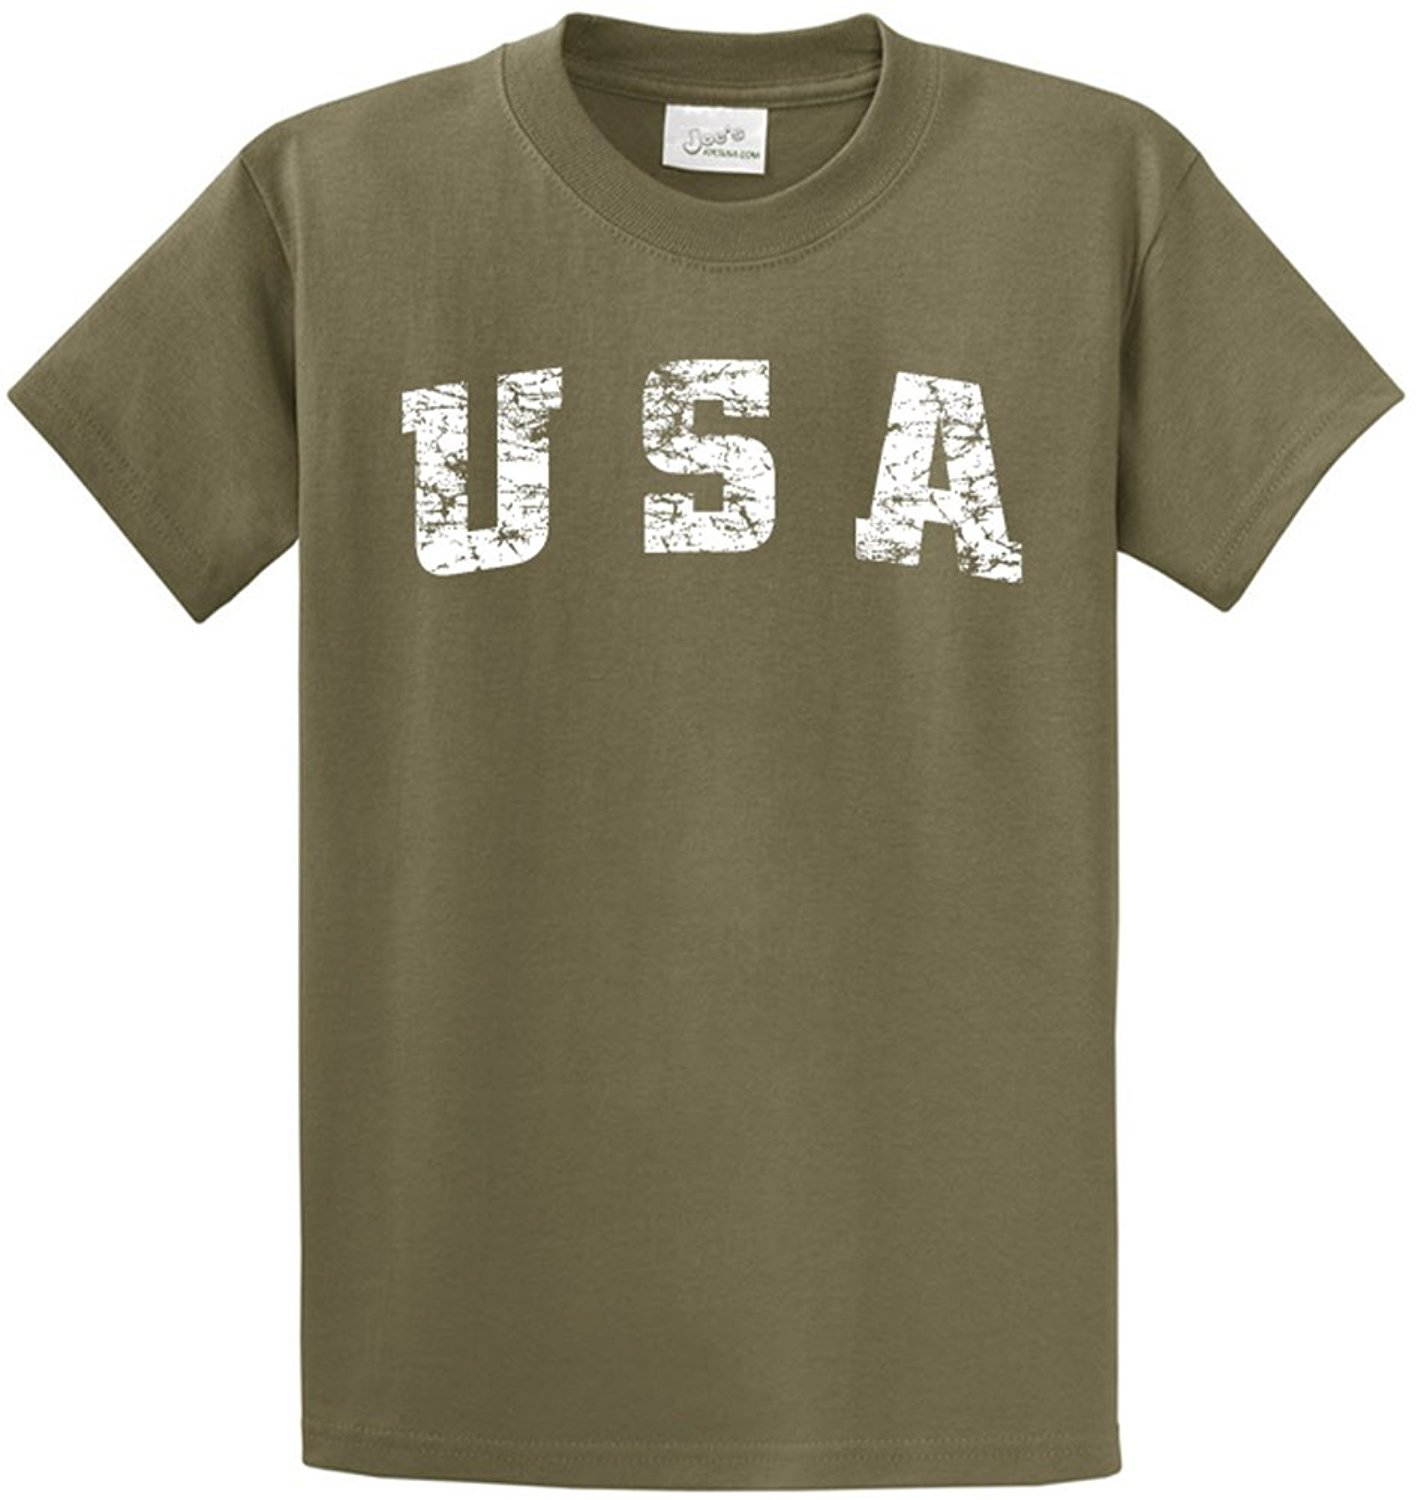 b4b7ef61ba1 Get Quotations · Joe s USA tm -Tall Vintage USA Logo Tee T-Shirts in Size  4X-